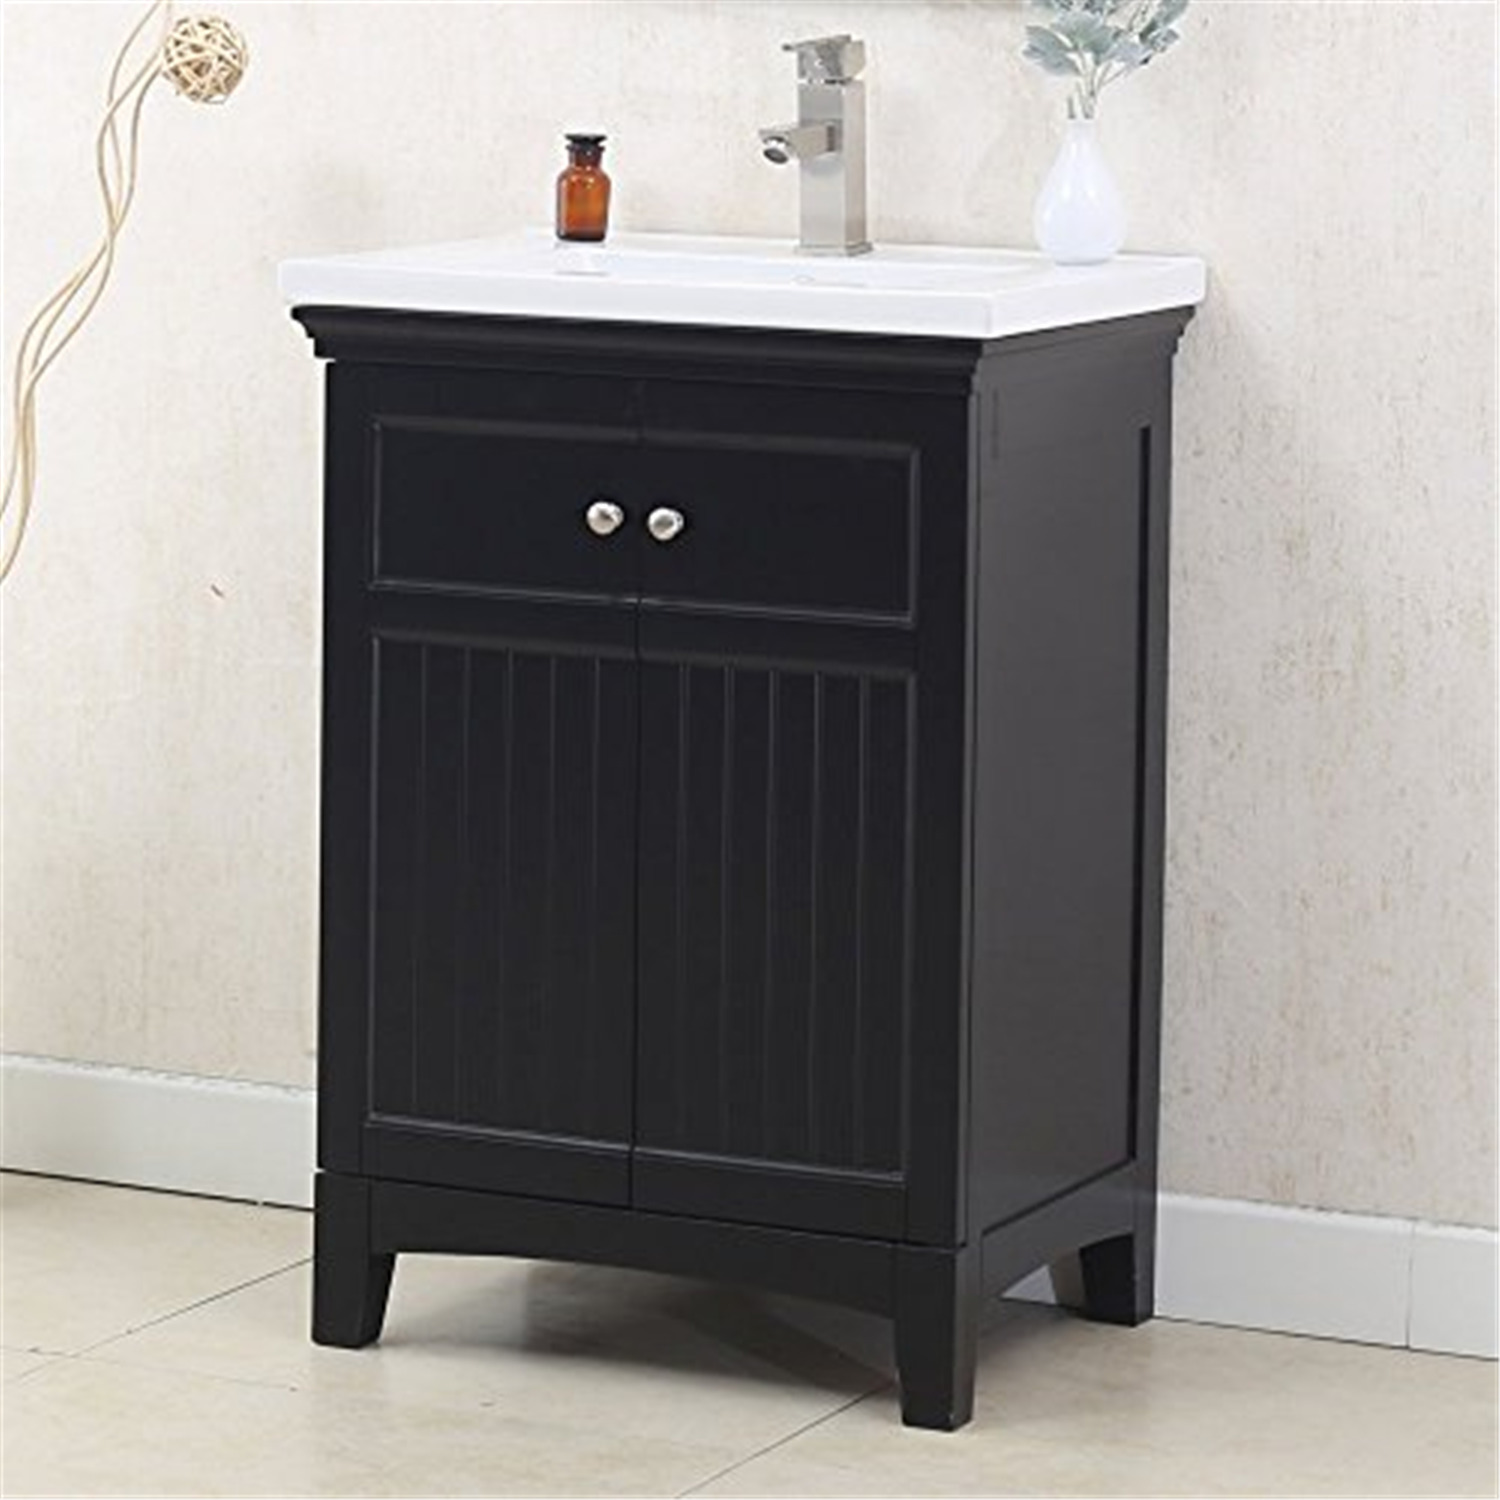 24 white sink vanity no faucet color white material solid poplar walmart com